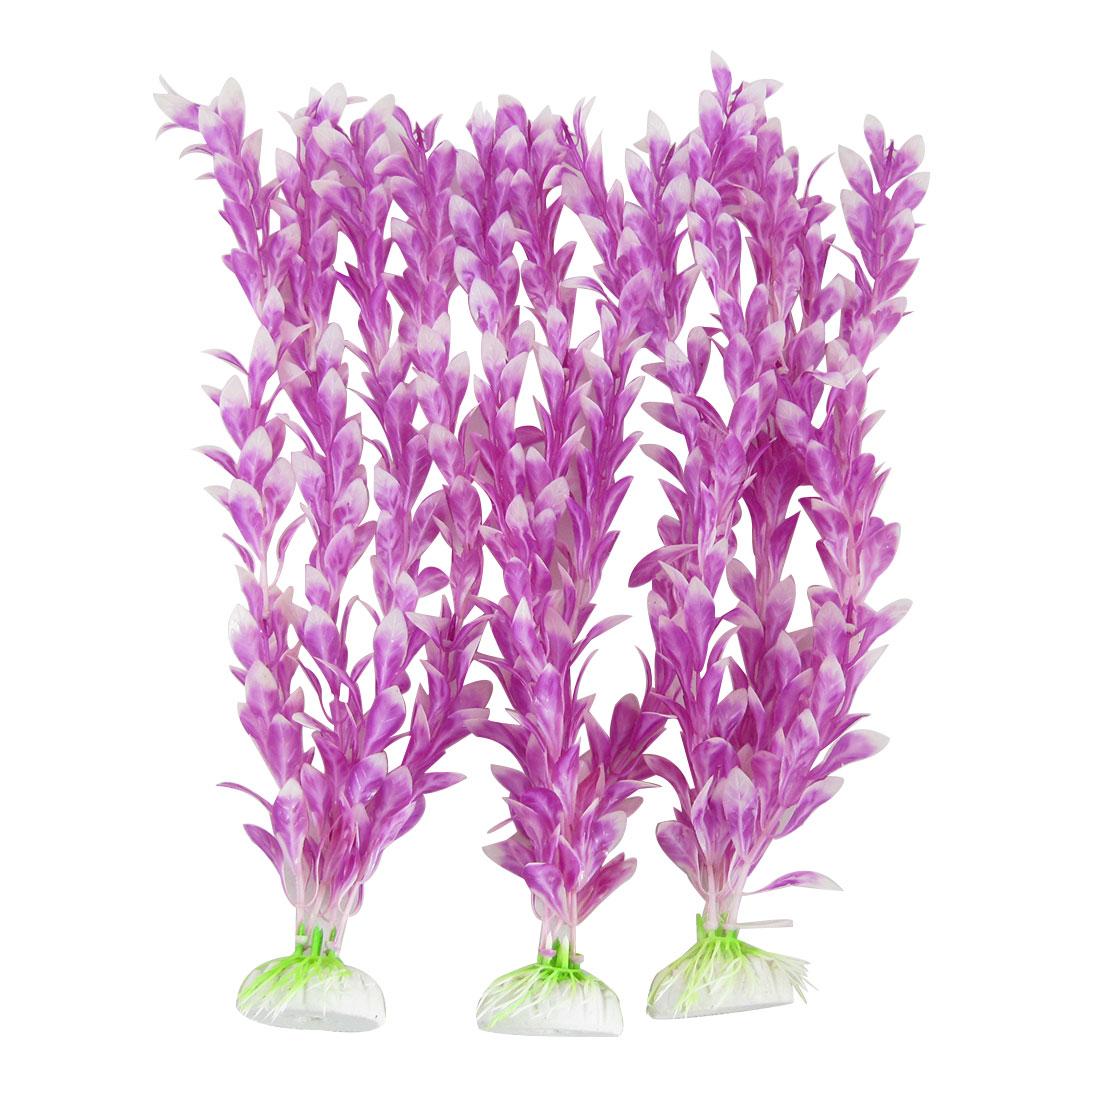 Aquarium Aquascape Plastic Plant Decoration Purple White 3Pcs